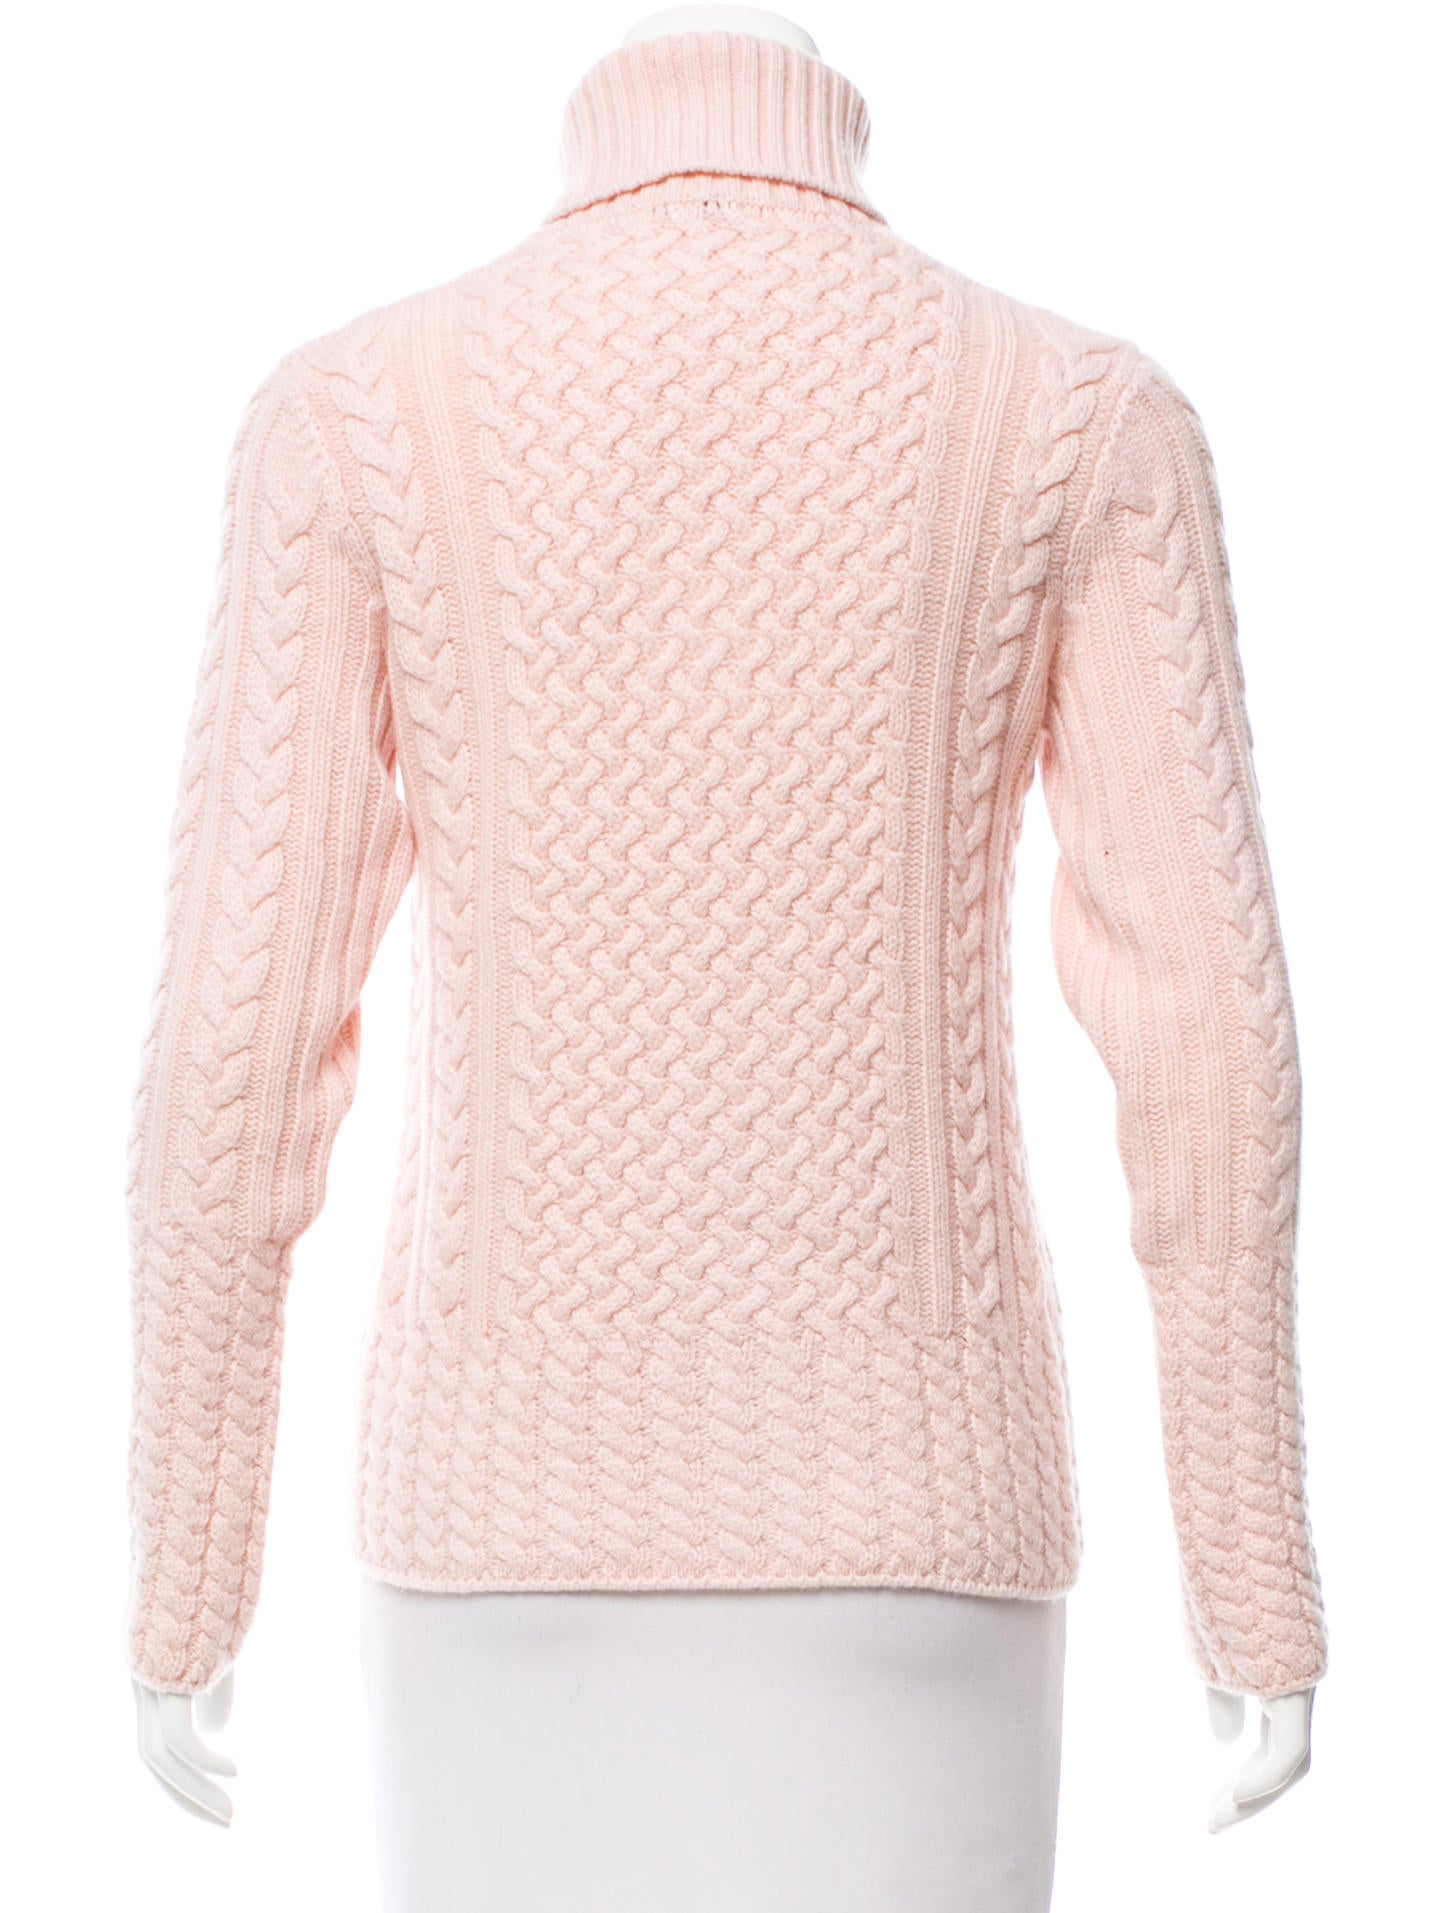 Loro Piana Cashmere Cable Knit Sweater - Clothing - LOR38935 | The ...